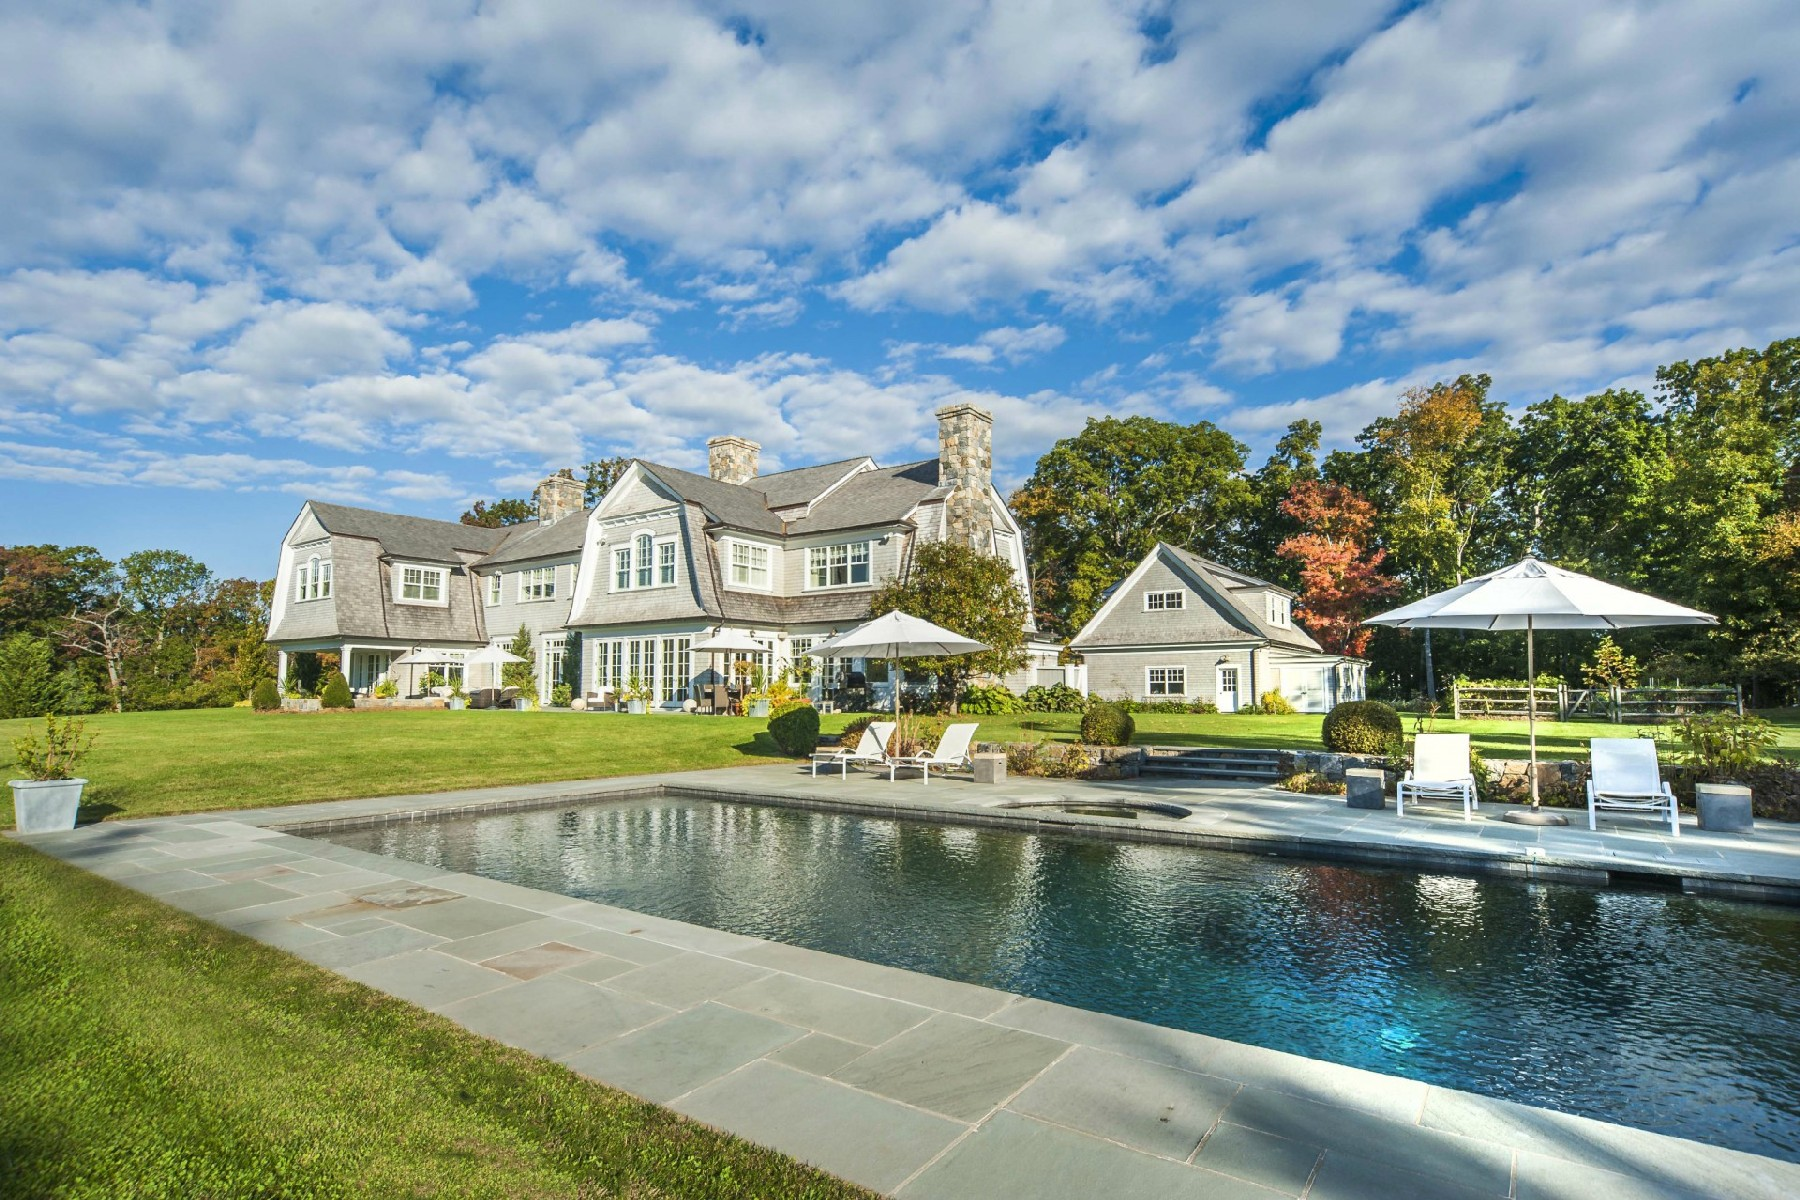 Vivienda unifamiliar por un Venta en Magnificent Estate on 7.1 Acre Island 20 Juniper Road Darien, Connecticut, 06820 Estados Unidos